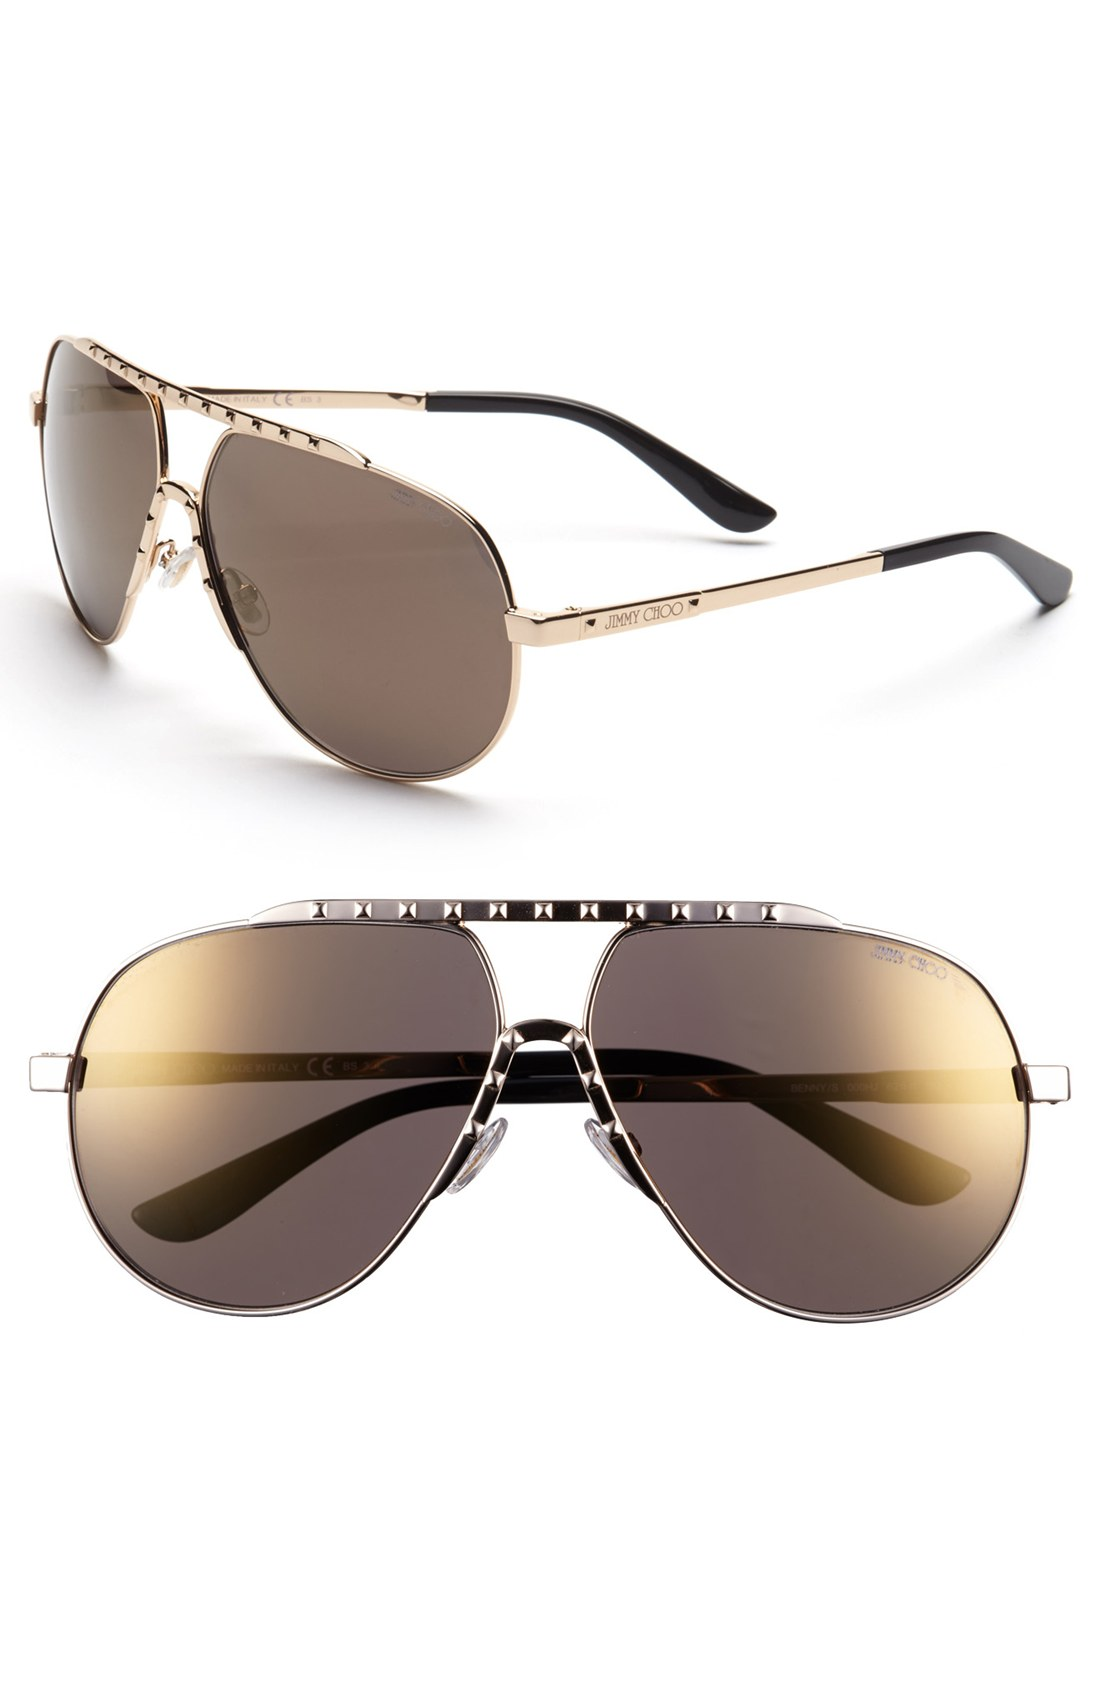 074a7d510f3e Jimmy Choo Cher Aviator Sunglasses | United Nations System Chief ...